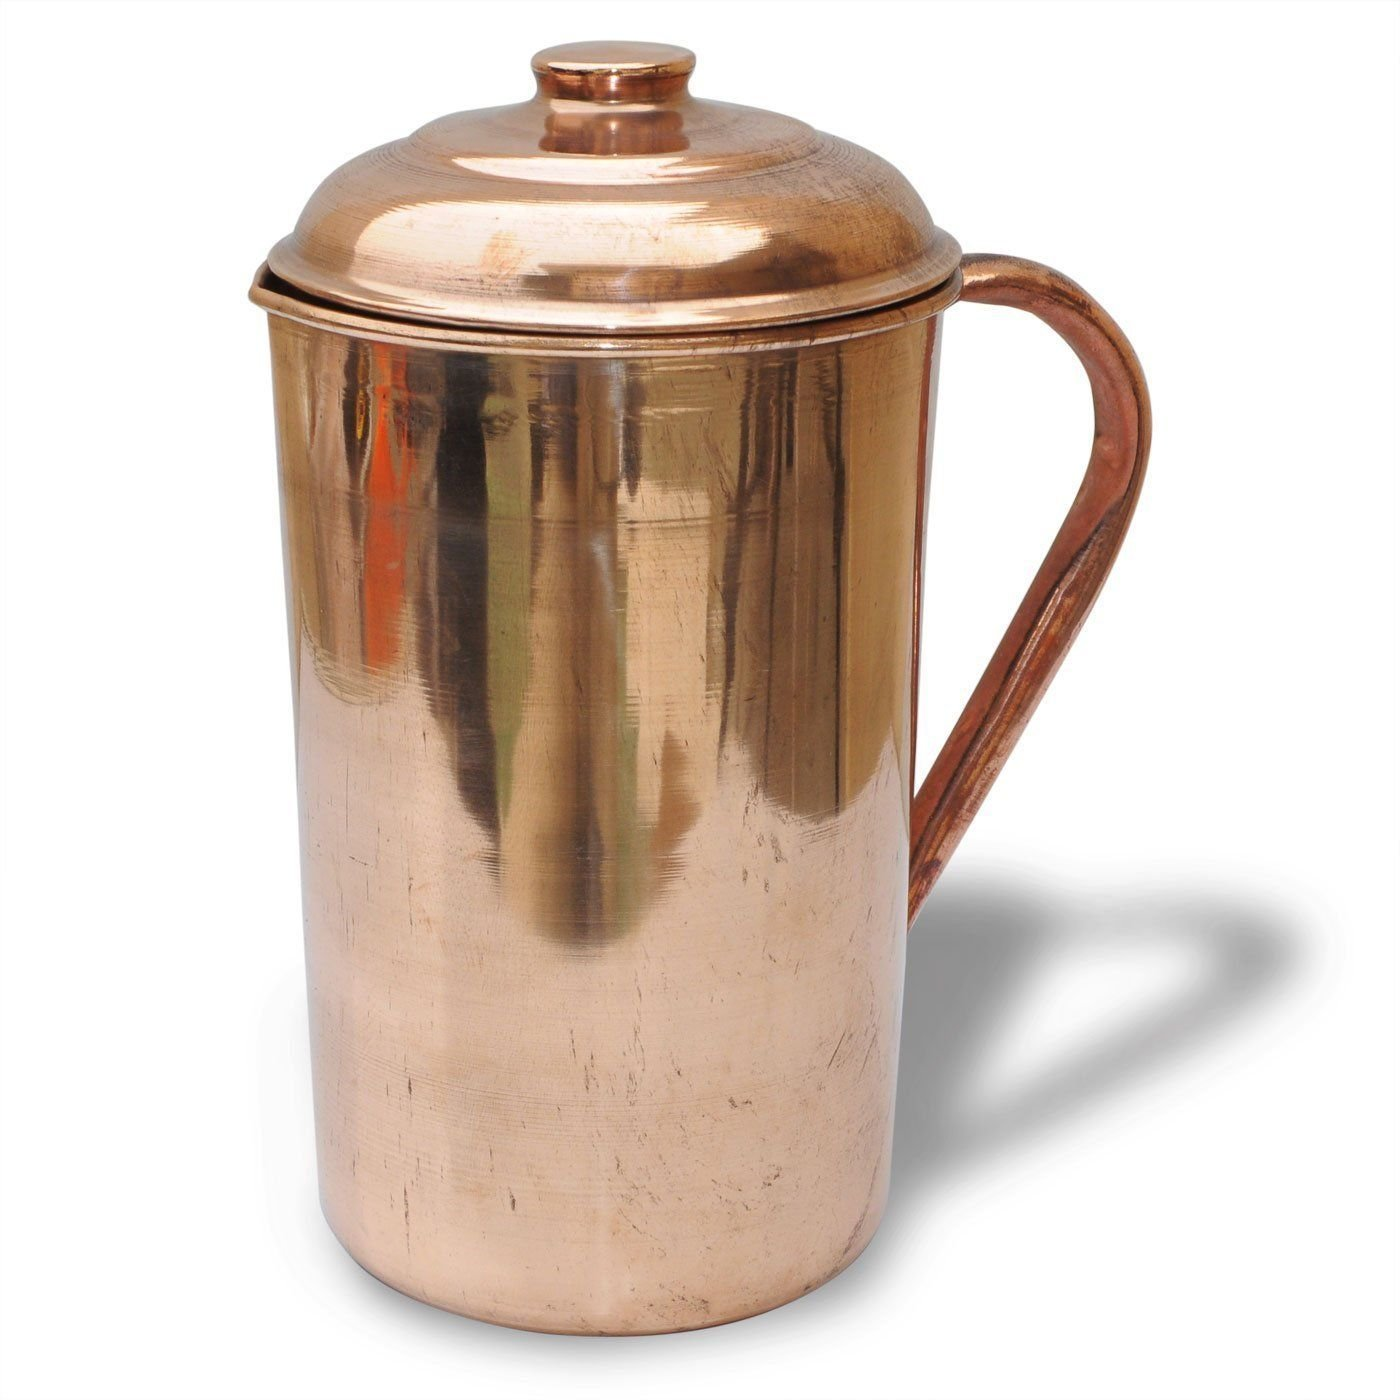 Biz2Frnds Pure Copper Pitcher (in/out) with lid cover 62 oz Jug Ayurveda Yoga Health